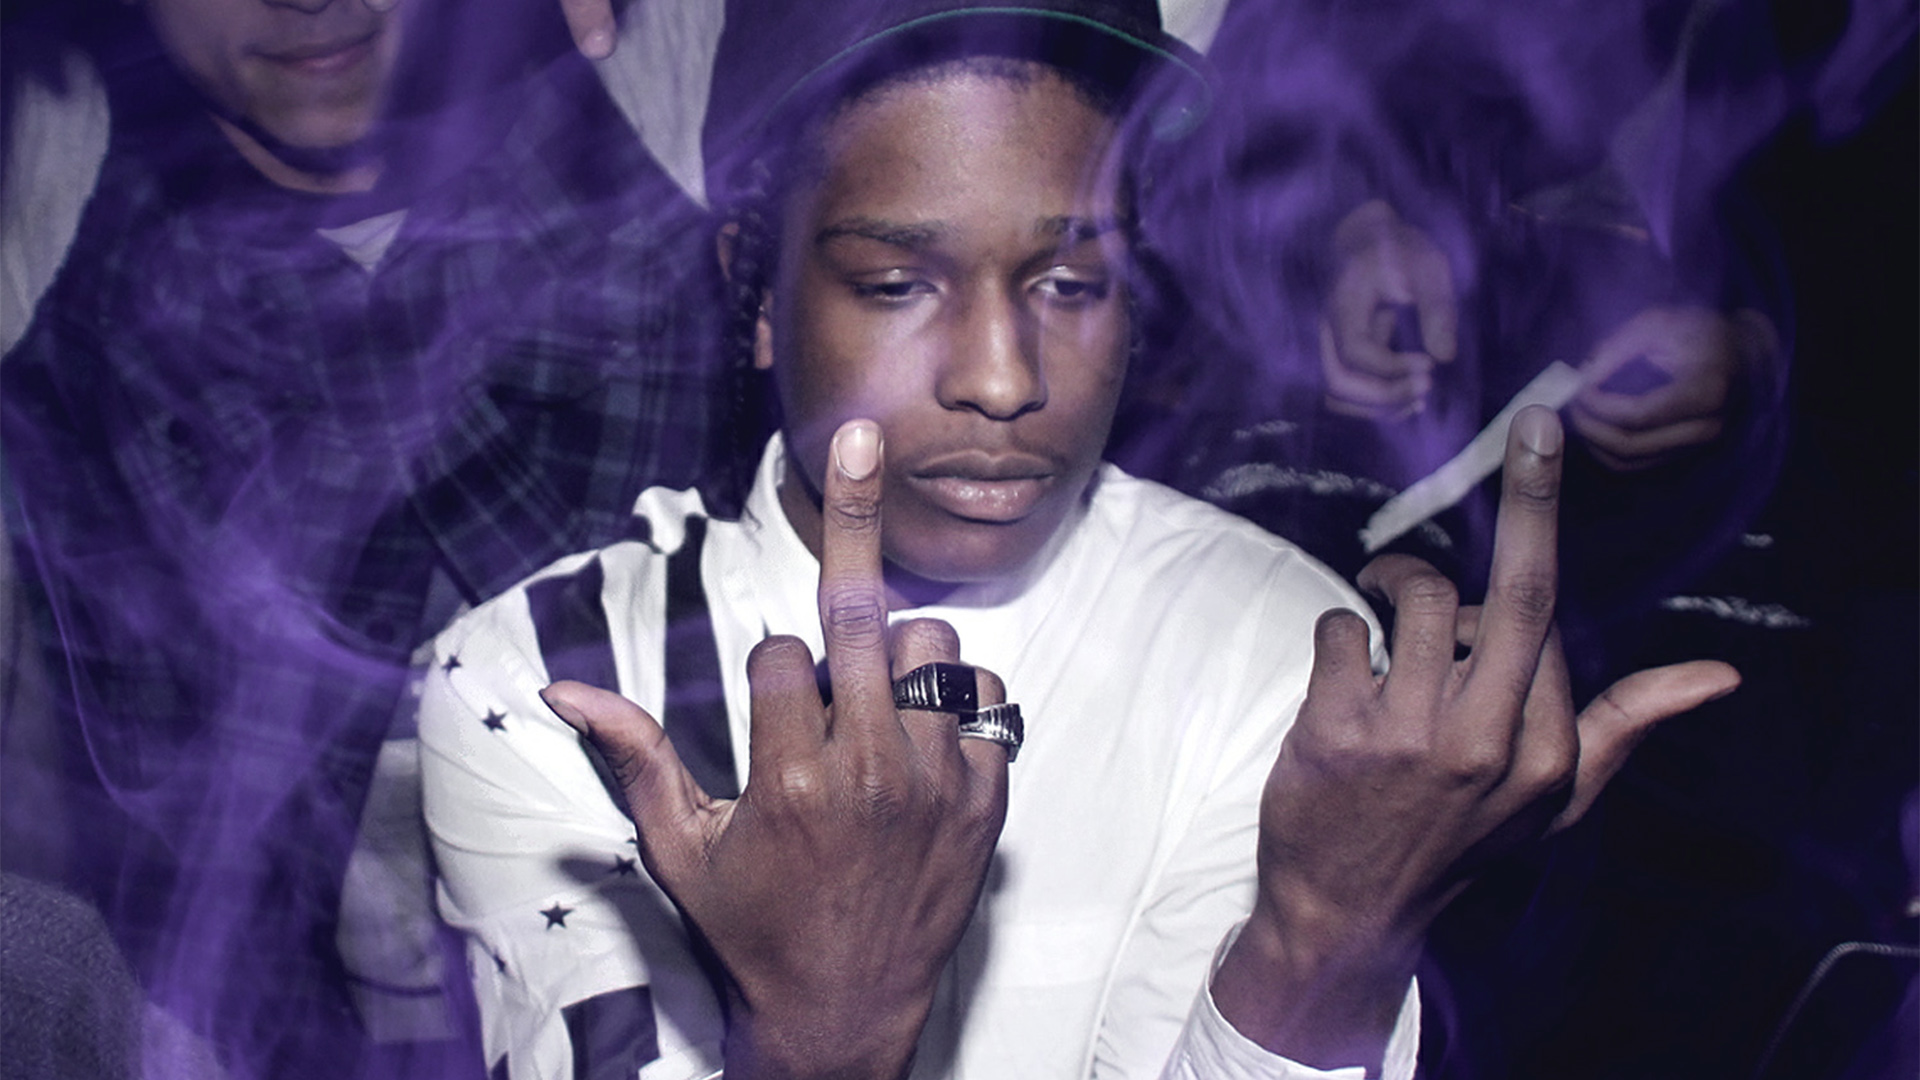 ASAP-Rocky-Comments-On-Security-Scuffle-AT-VMAs-wallpaper-wp3602748